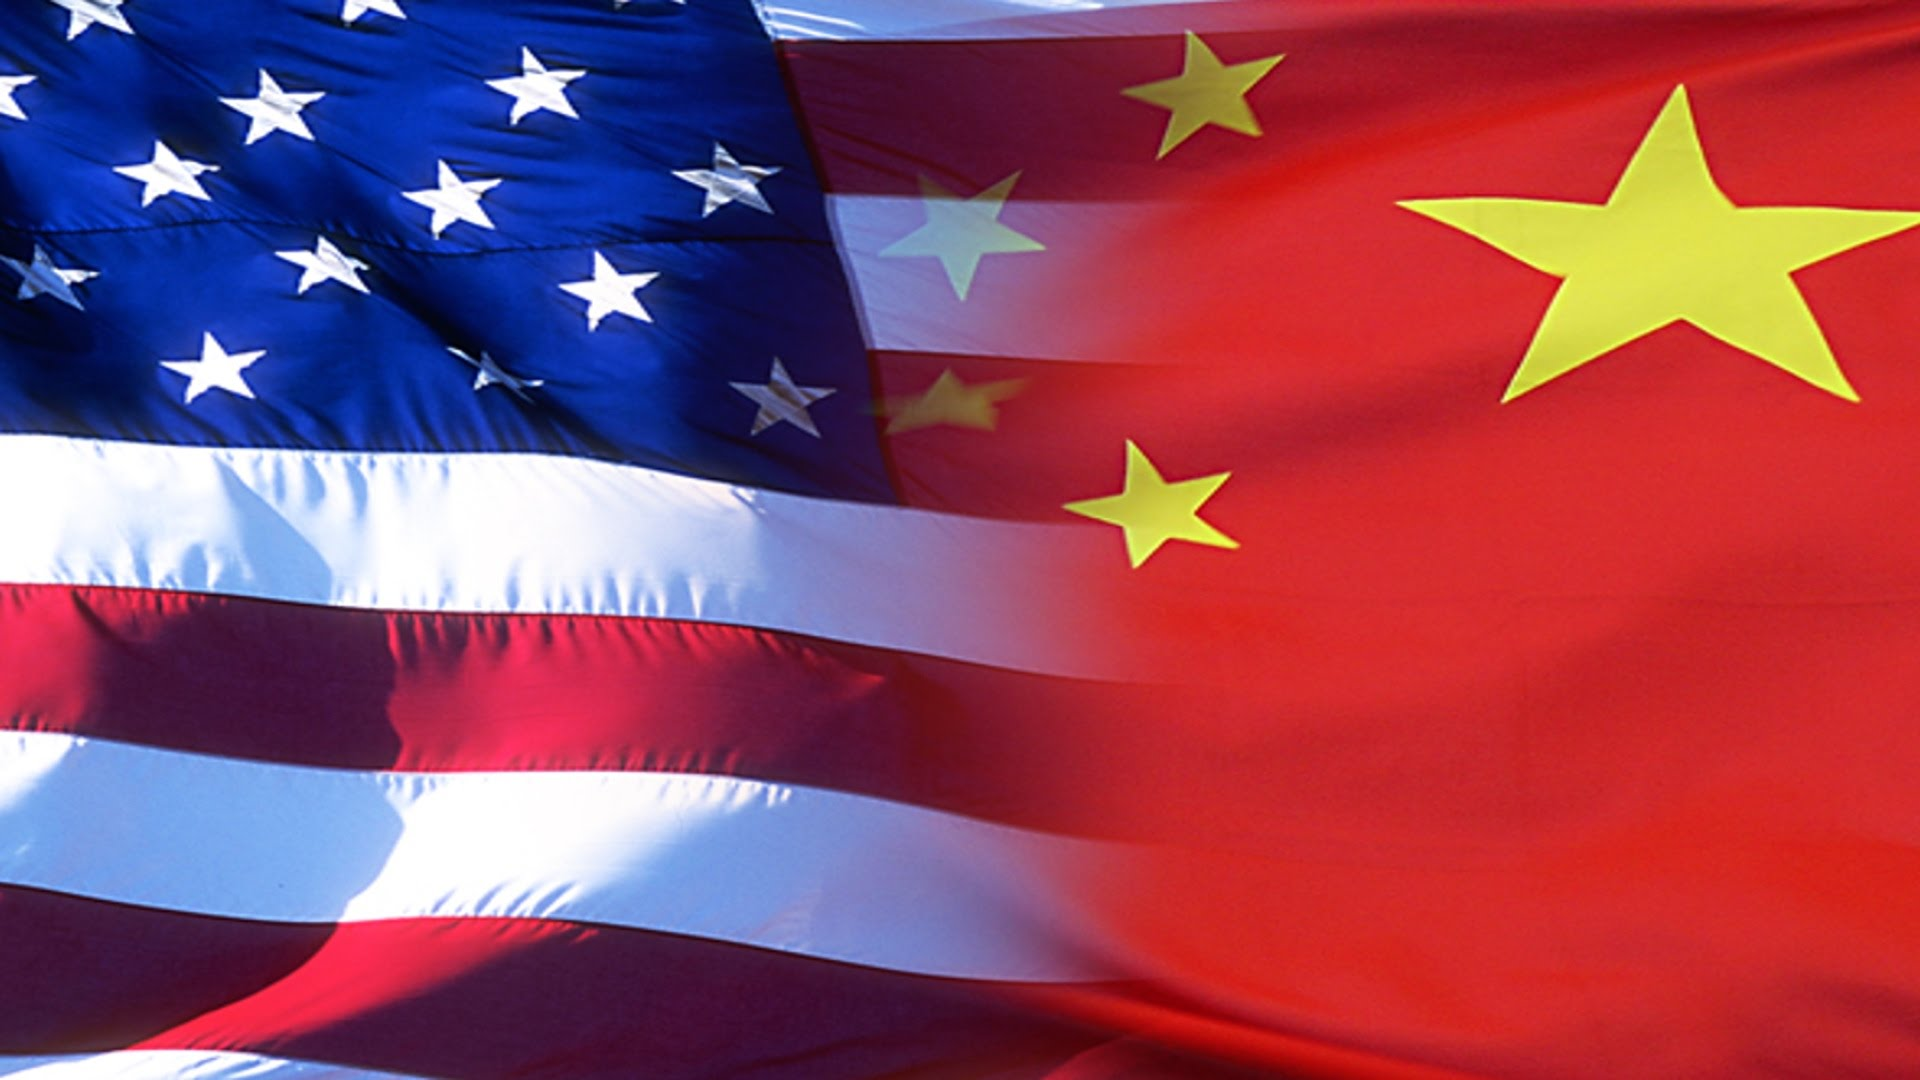 aranceles-usa-china-pollo-antidumping